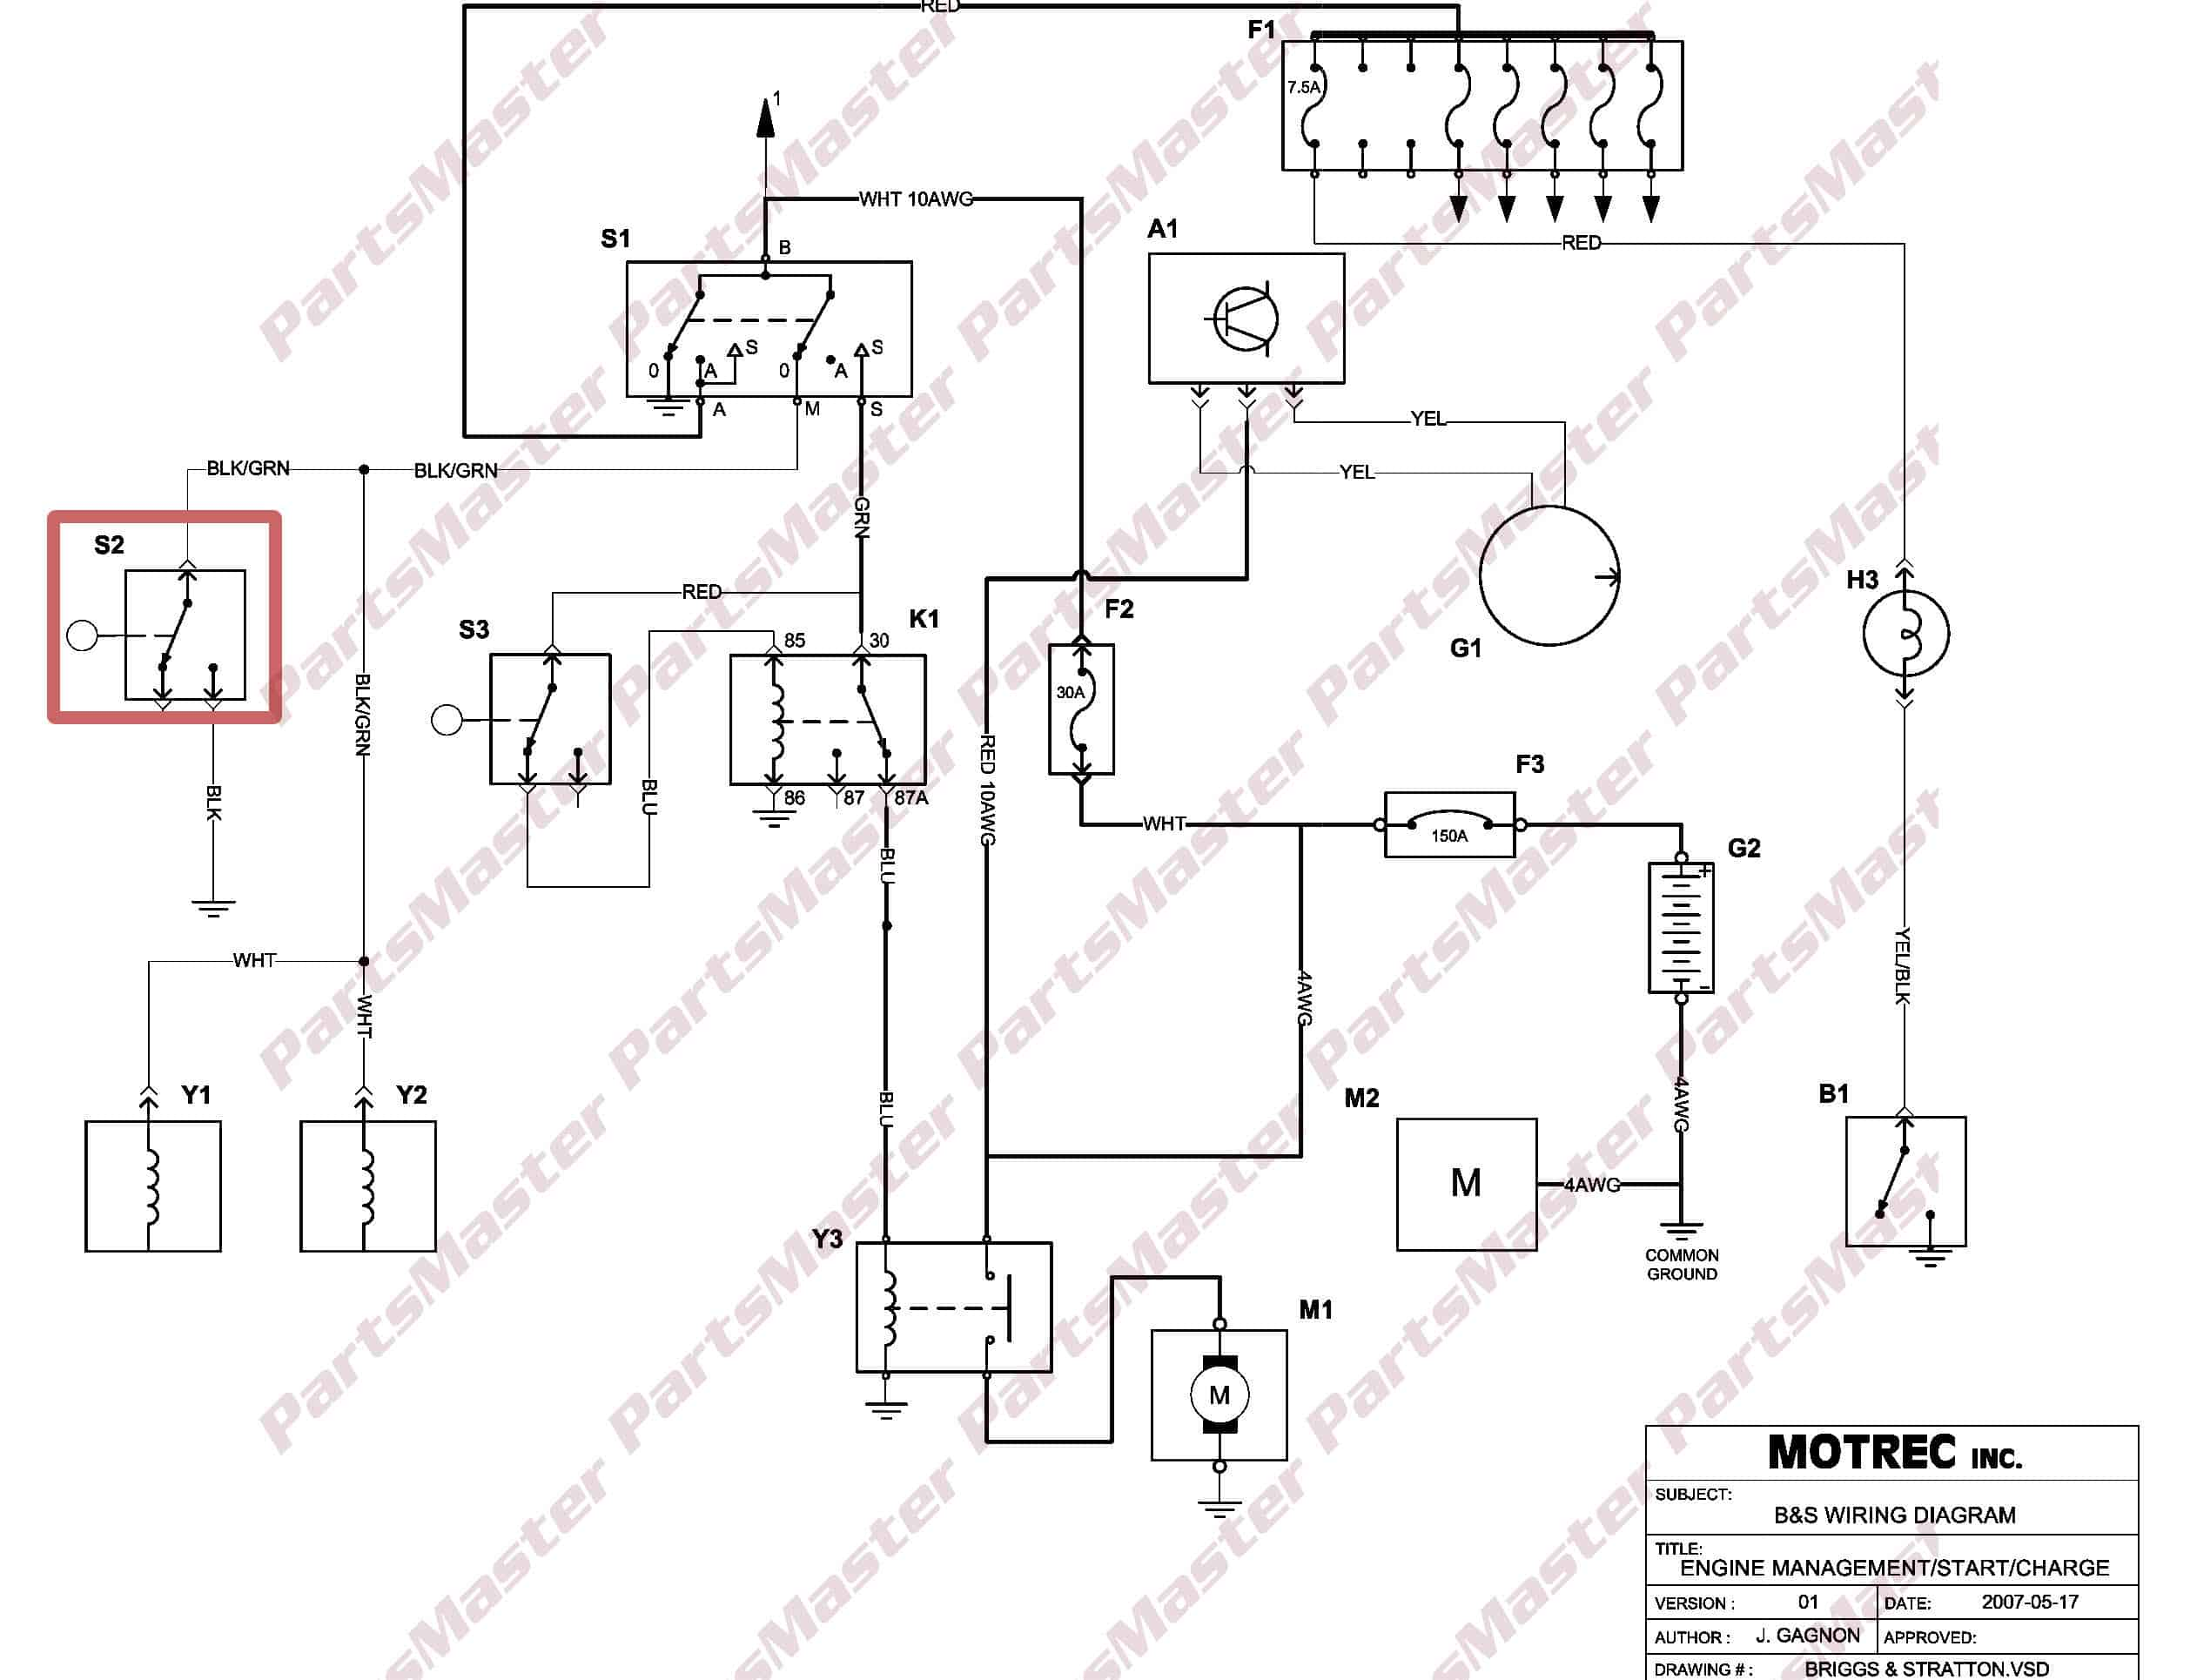 Kawasaki Mule 3000 Ignition Wiring Diagram Simple Guide About Caterpillar Switch Plugs Nissan Frontier